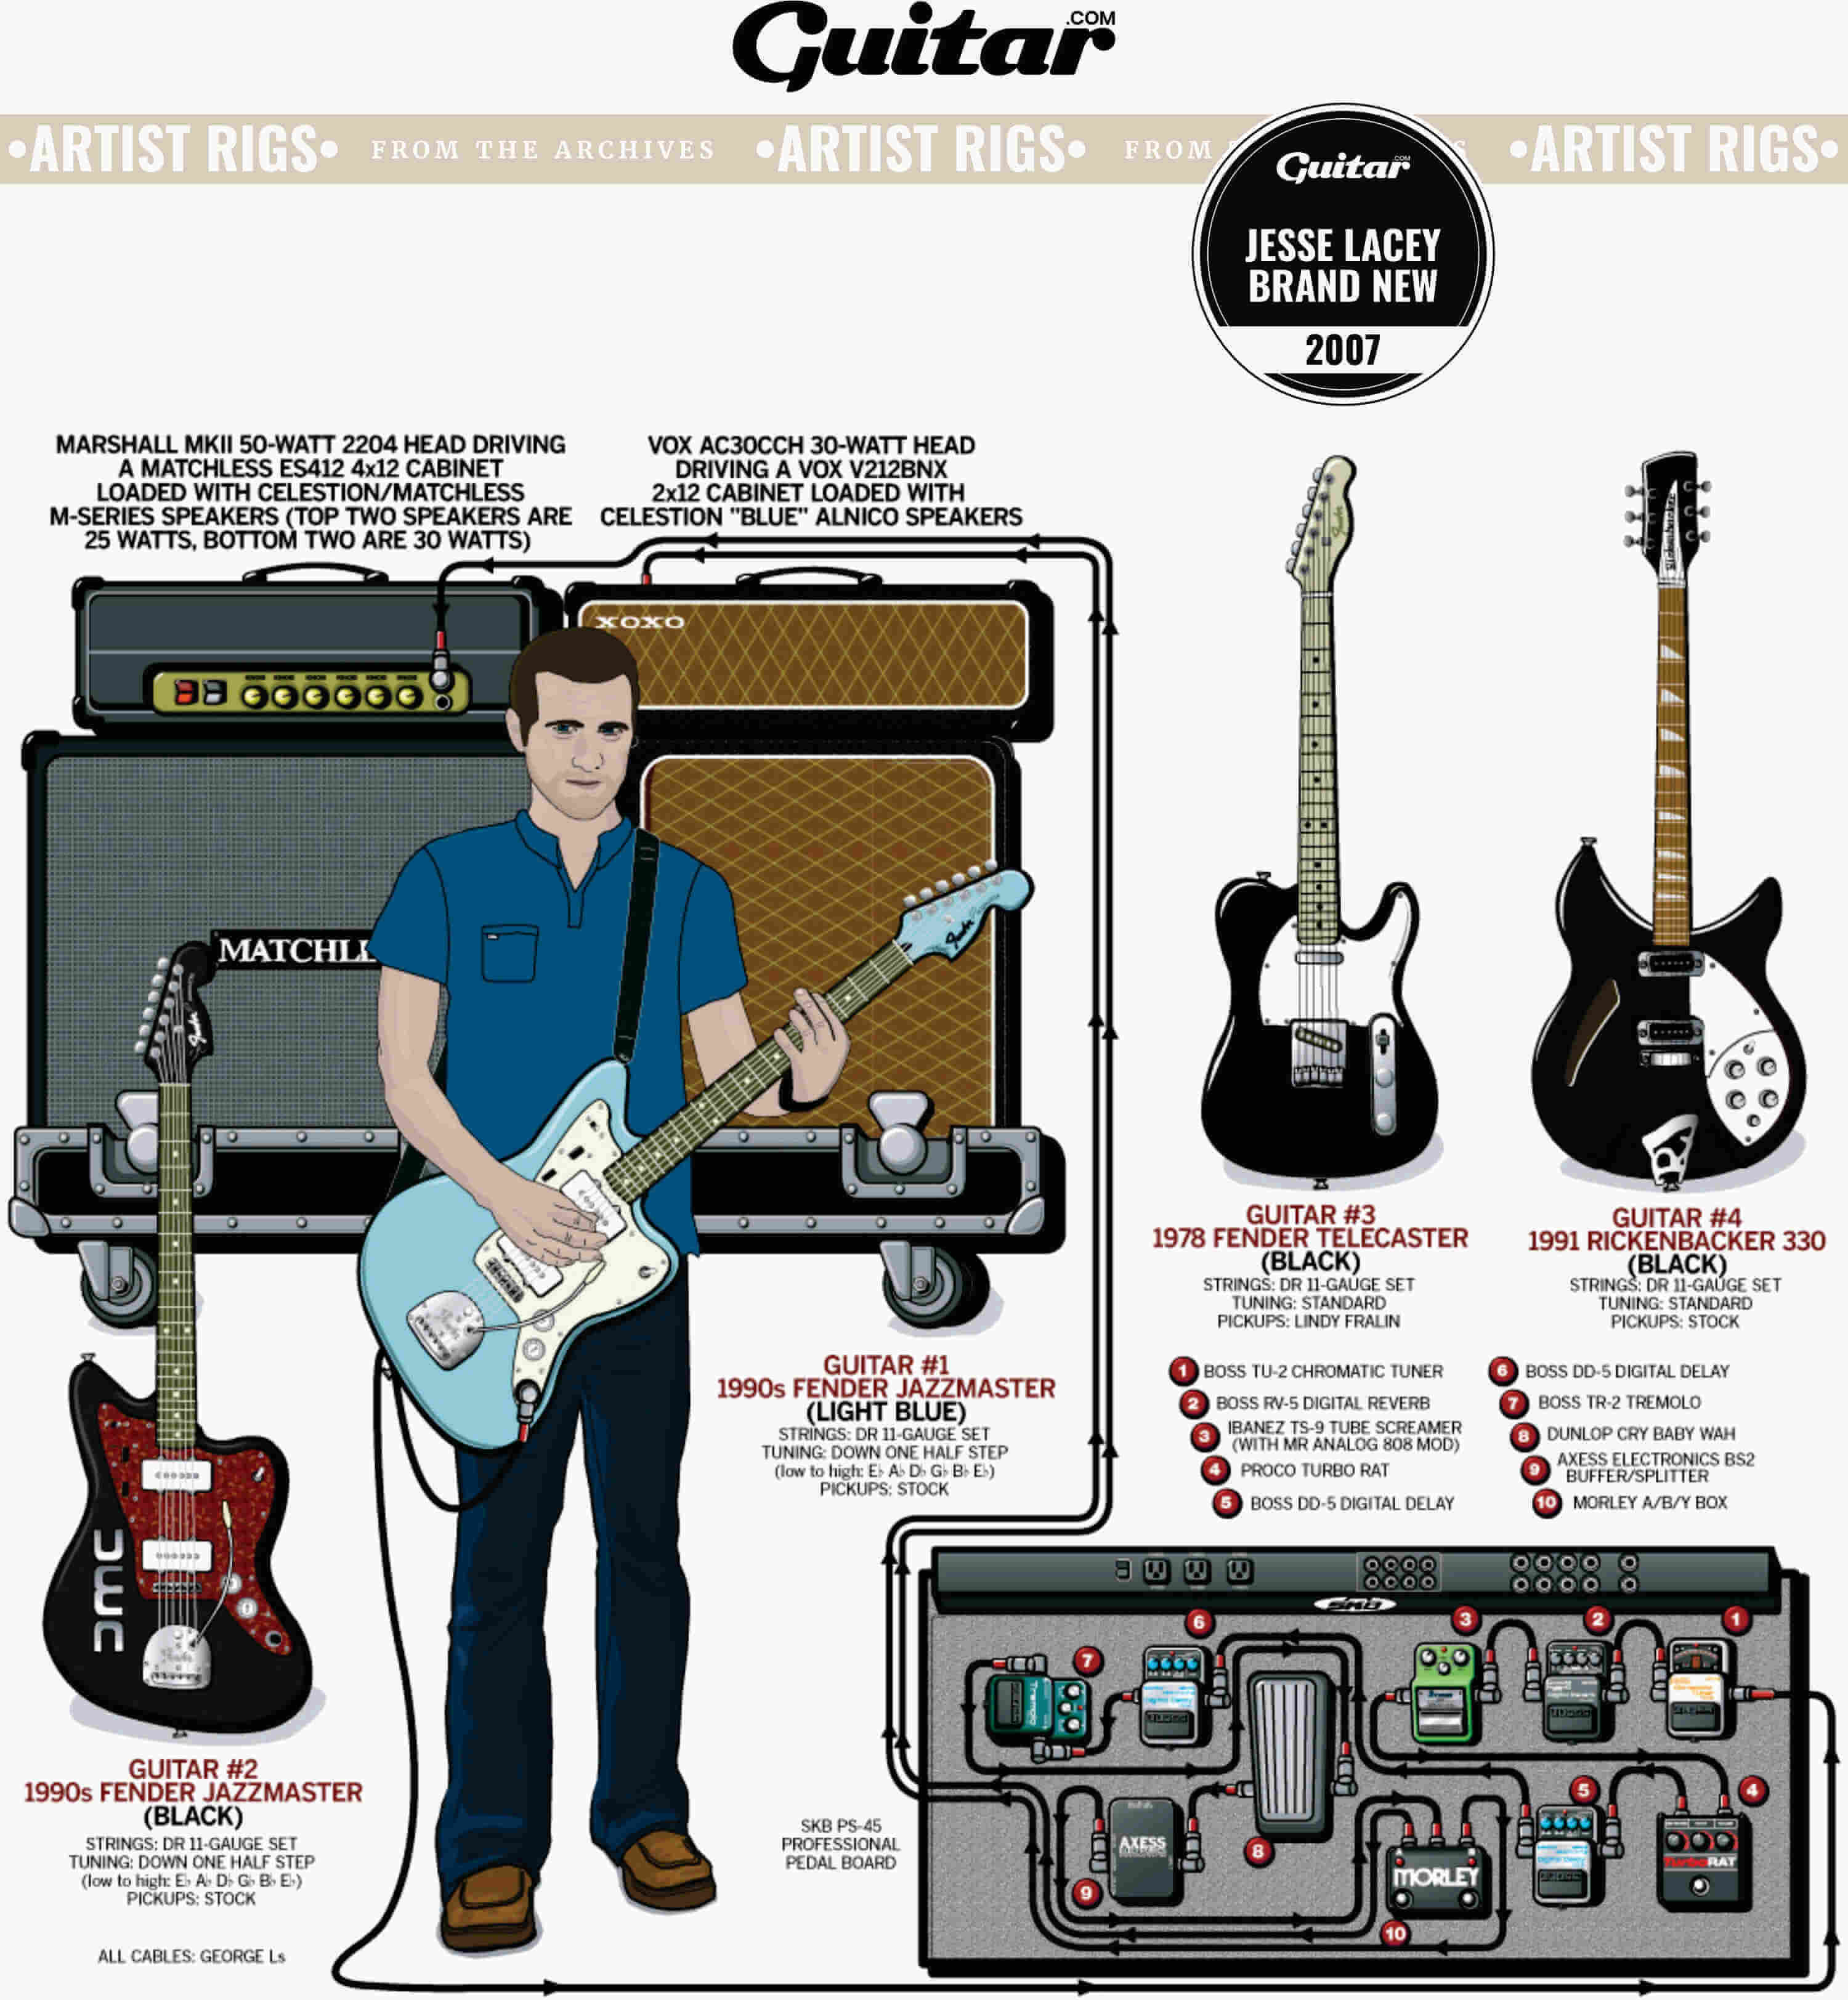 Rig Diagram: Jesse Lacey, Brand New (2007)